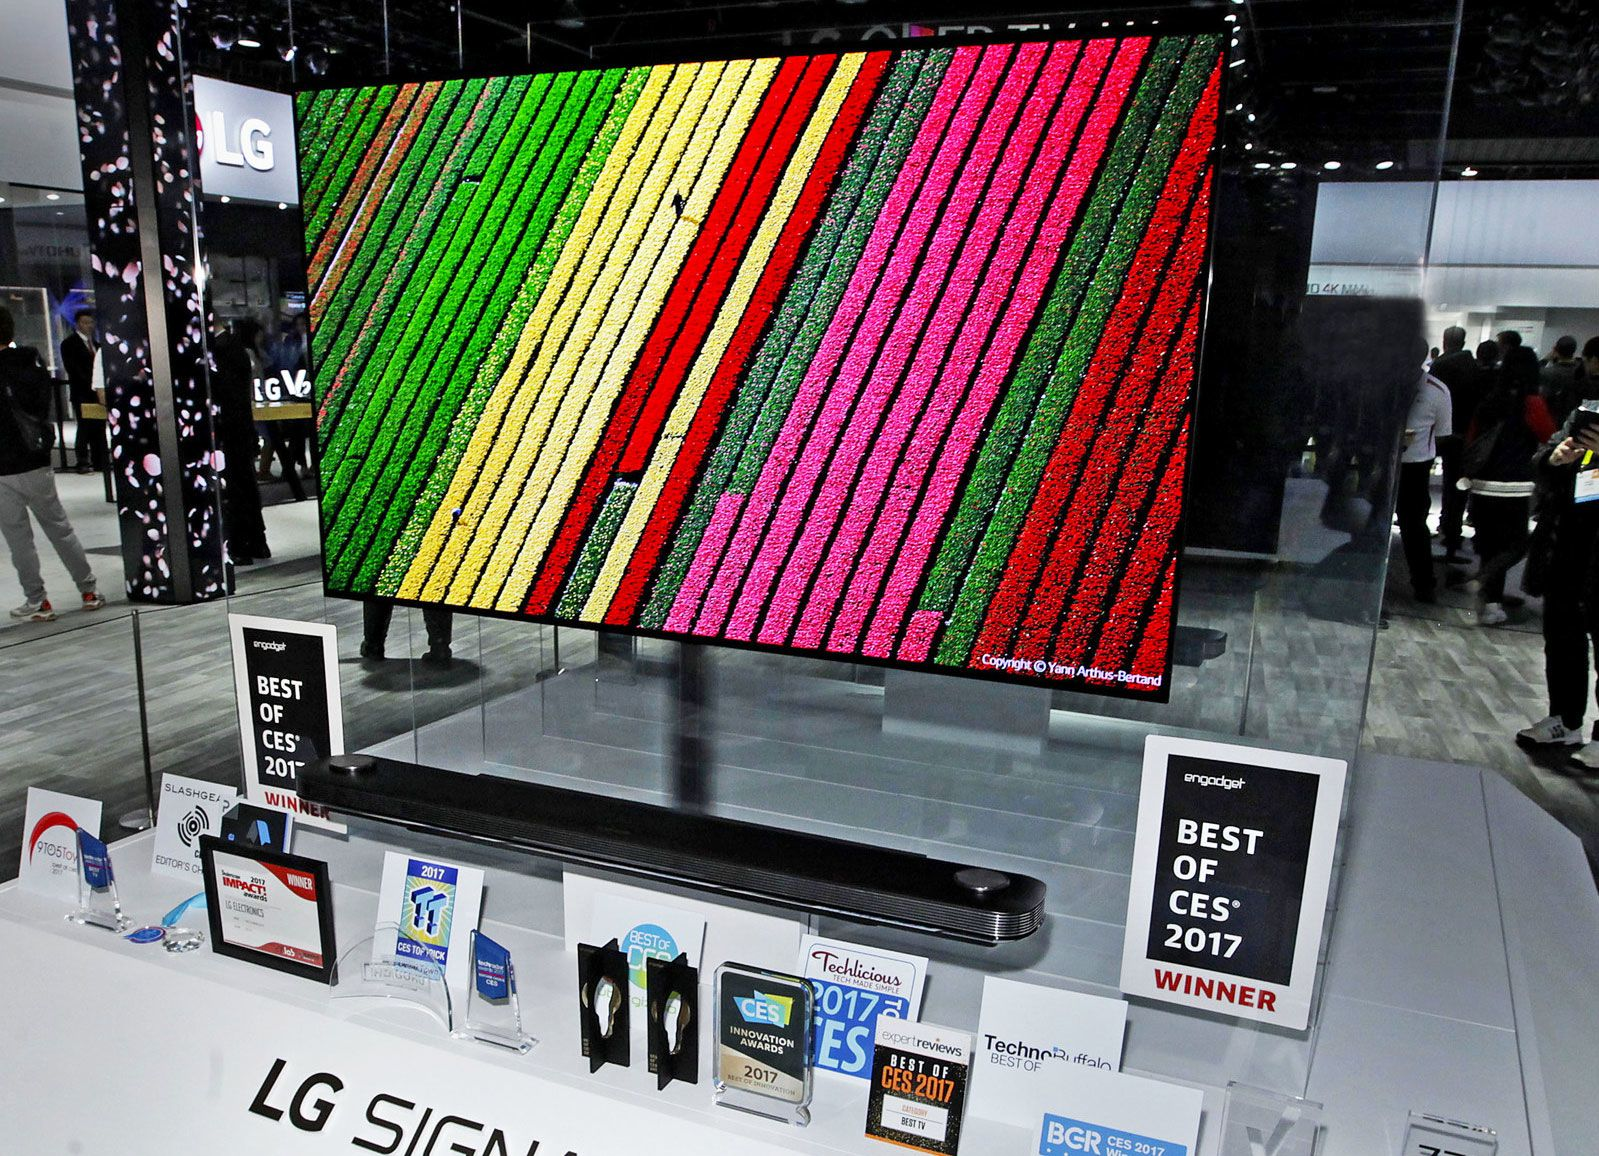 LG's 77inch Wallpaper TV is selling for the low price of